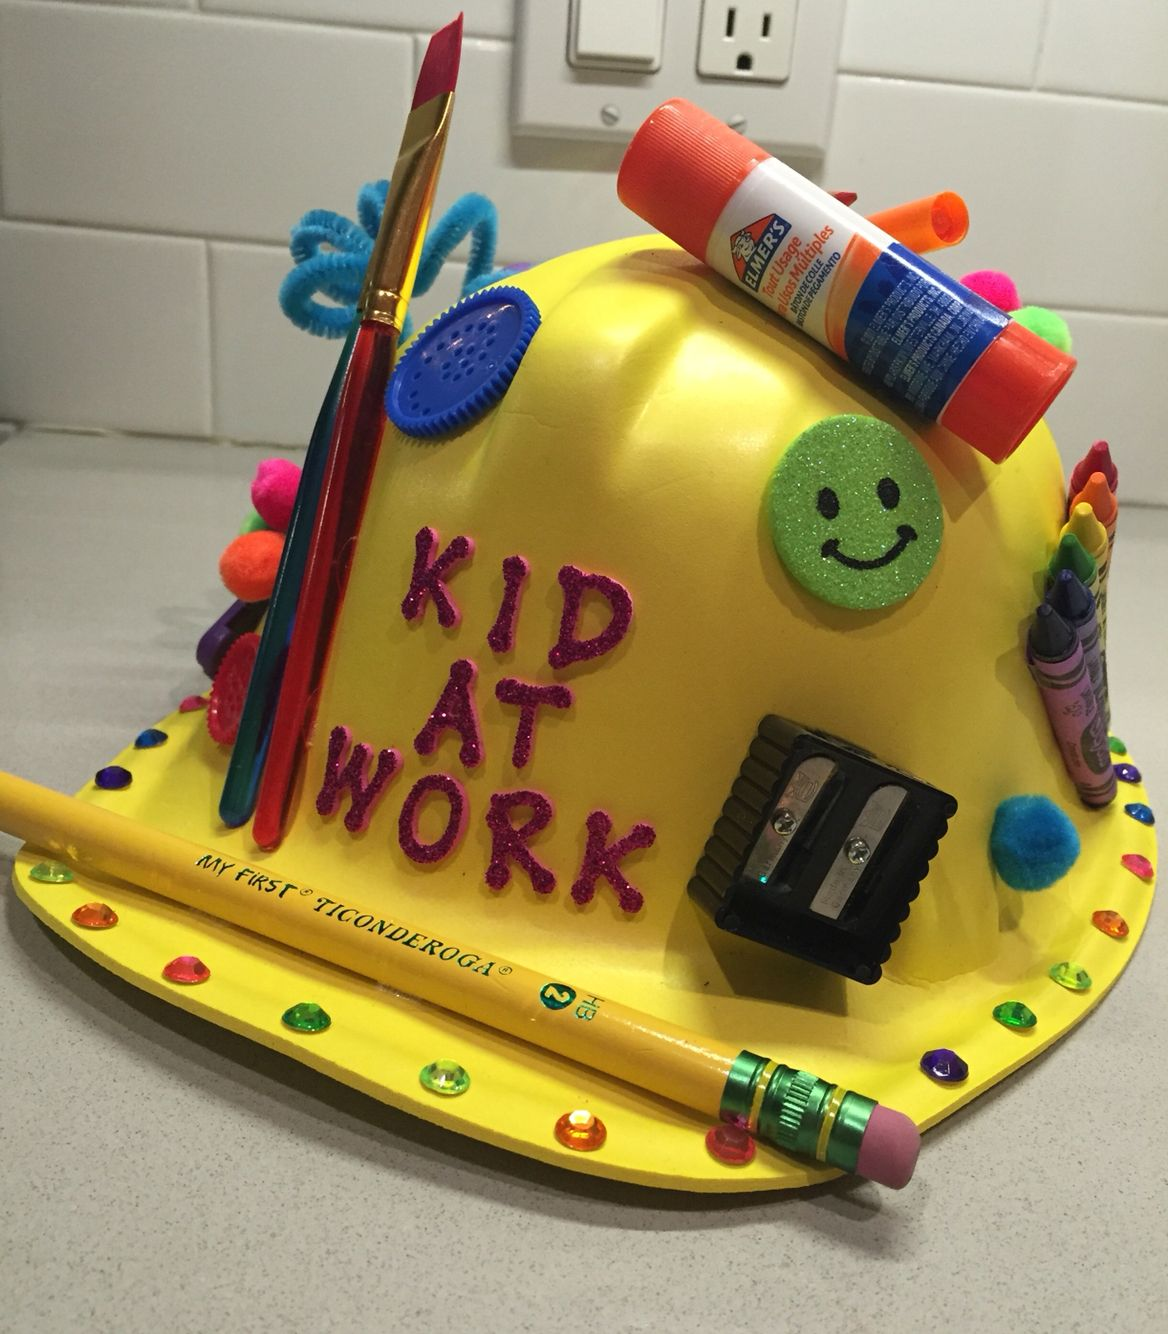 crazy hat day for pre school kid at work hat creative